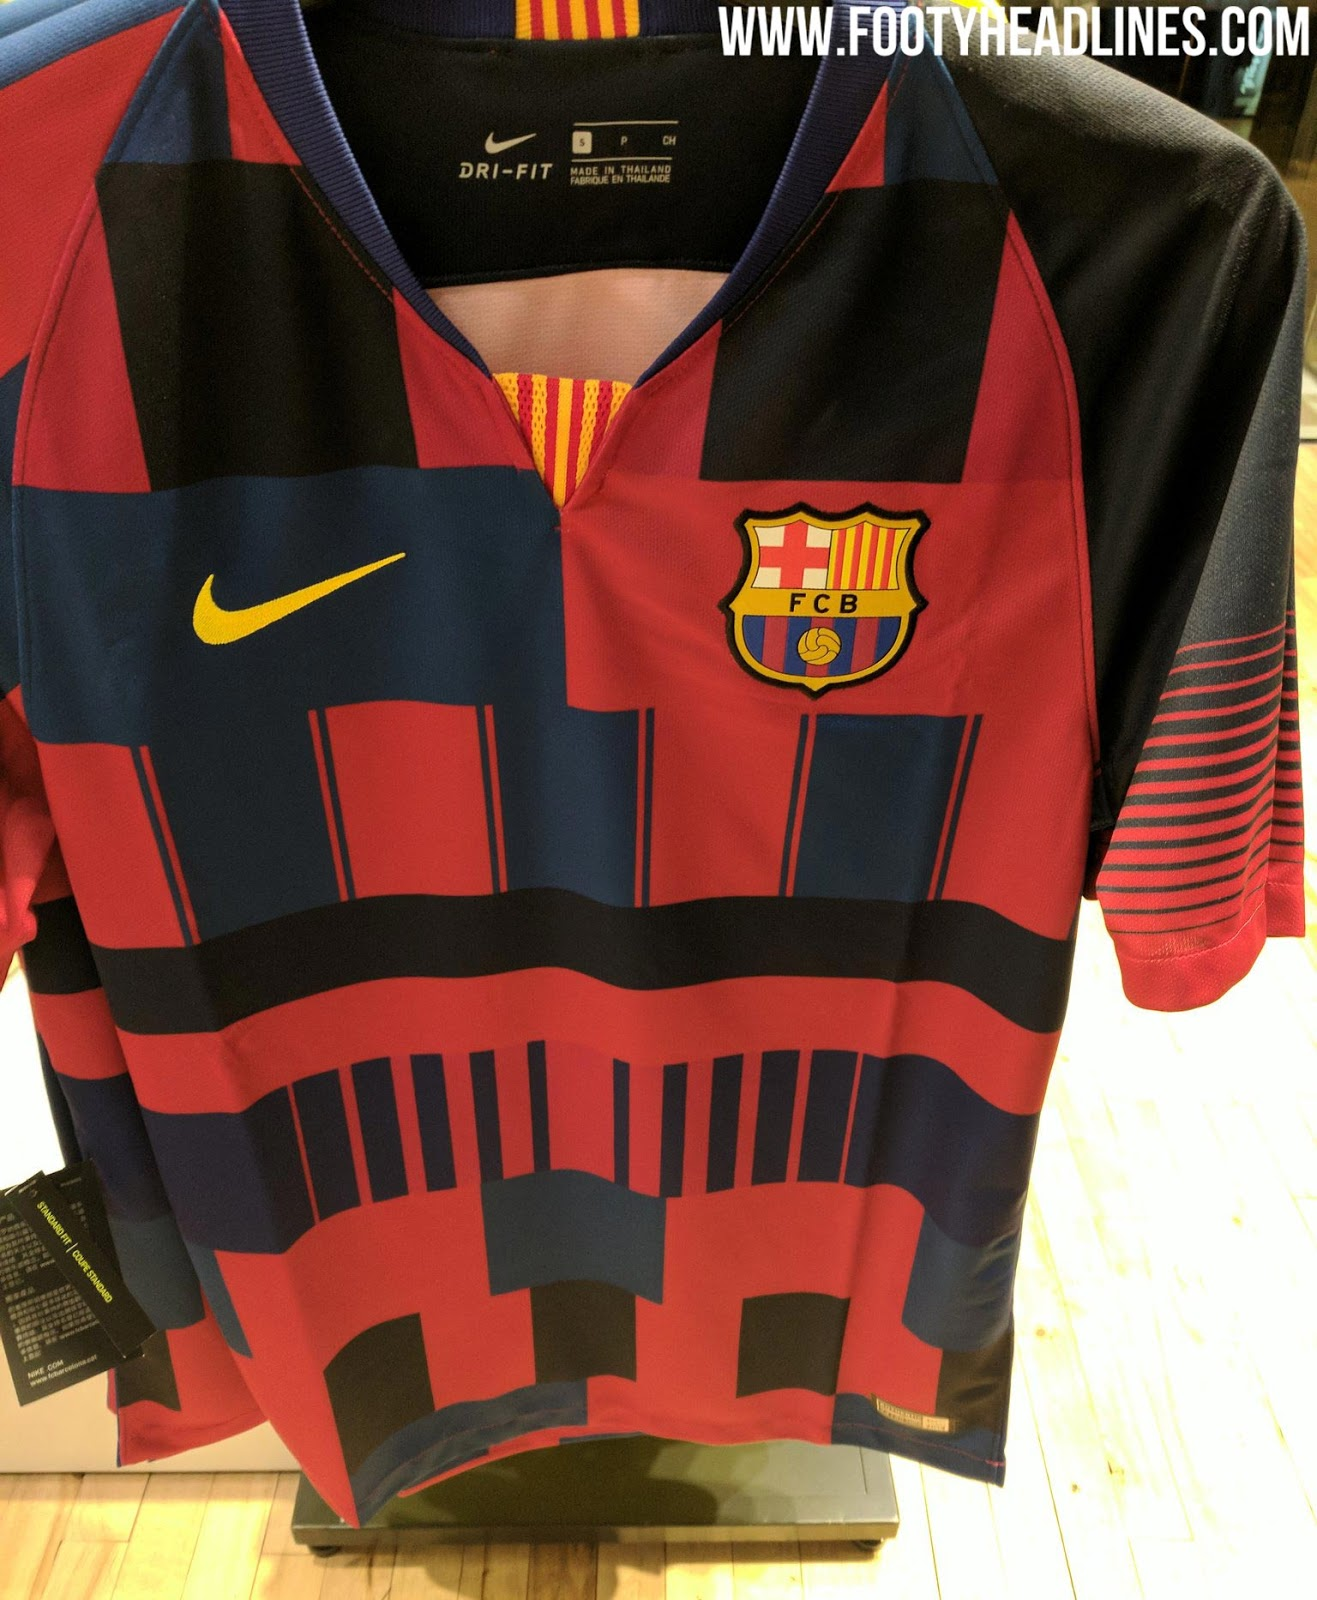 3a30db97058 Nike FC Barcelona Mashup Jersey Leaked - Launch Immediate